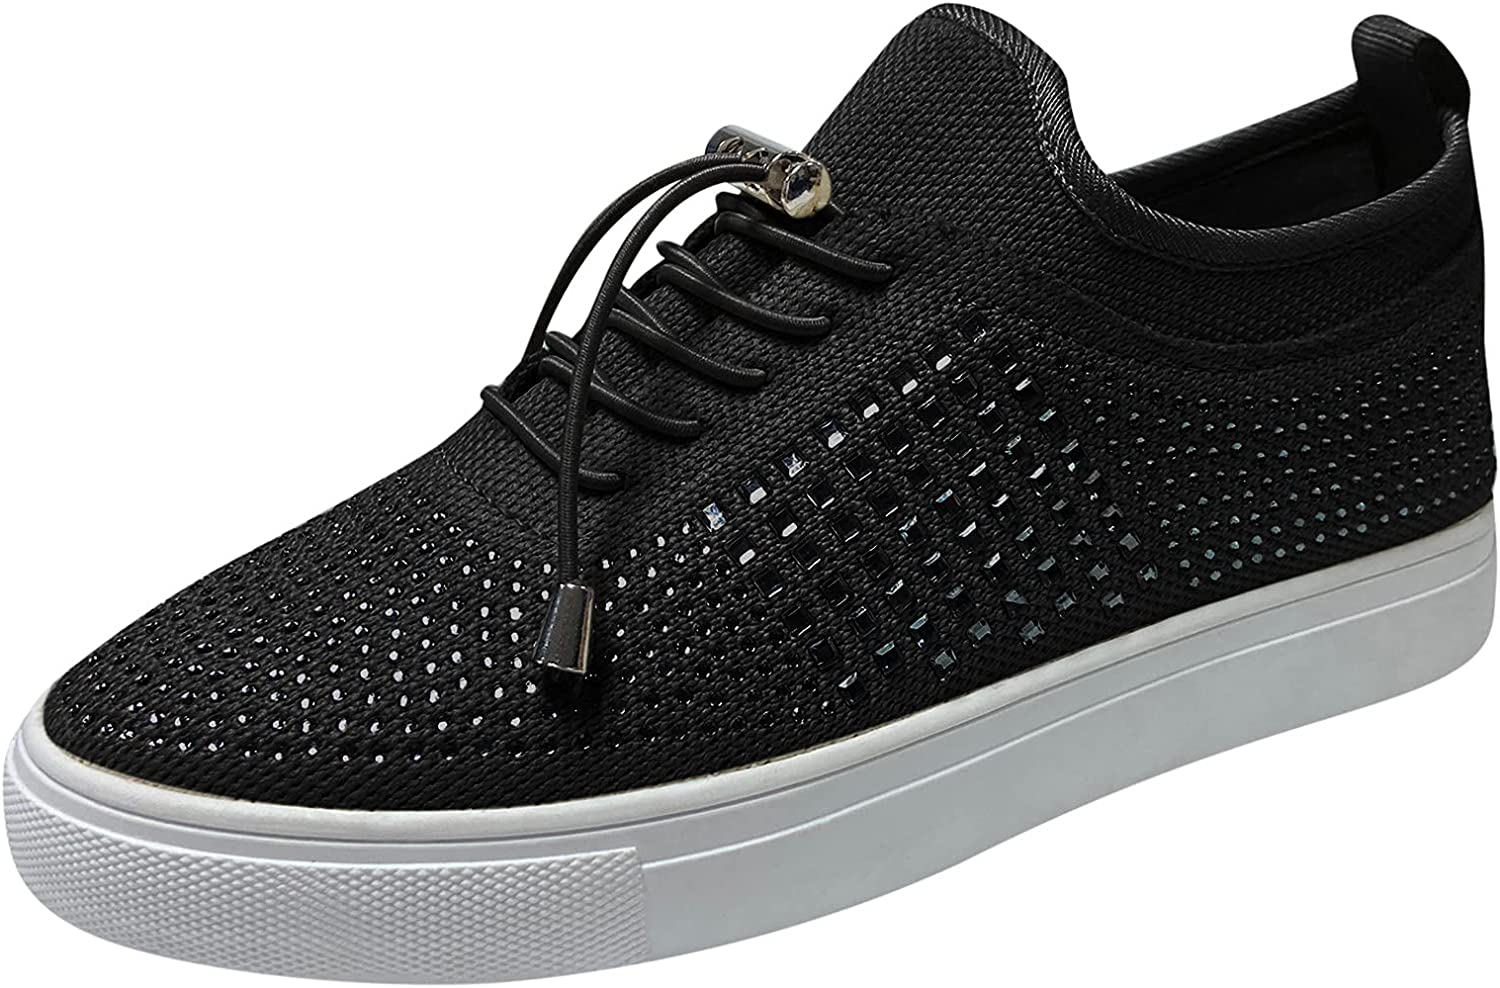 Eariuhfj Women Flat Crystal Slip-On Lace Sneakers Up Shoes Max 90% OFF Special price for a limited time